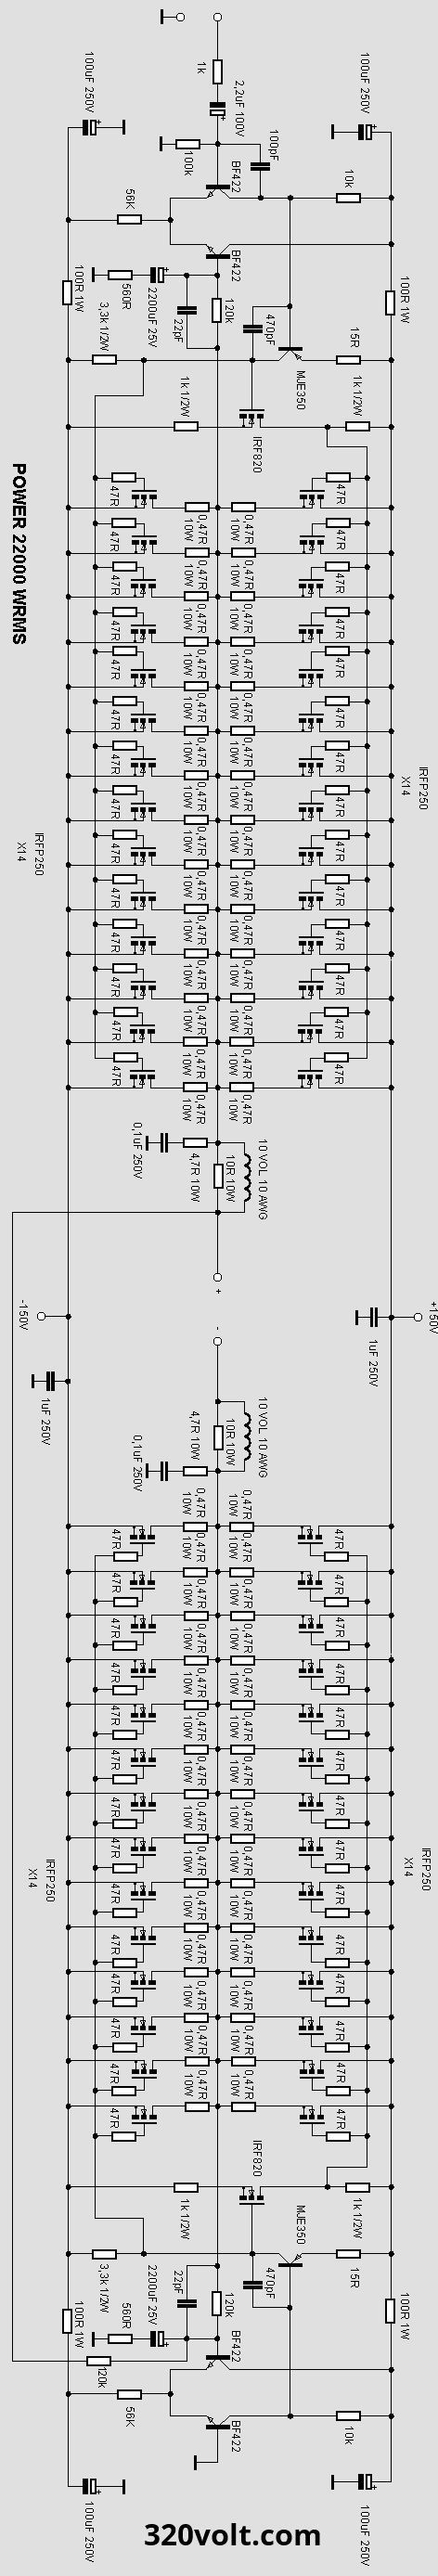 High Power 2200w Amplifier Circuit Transistor Audio How To Build Electronic Circuits Design Diy